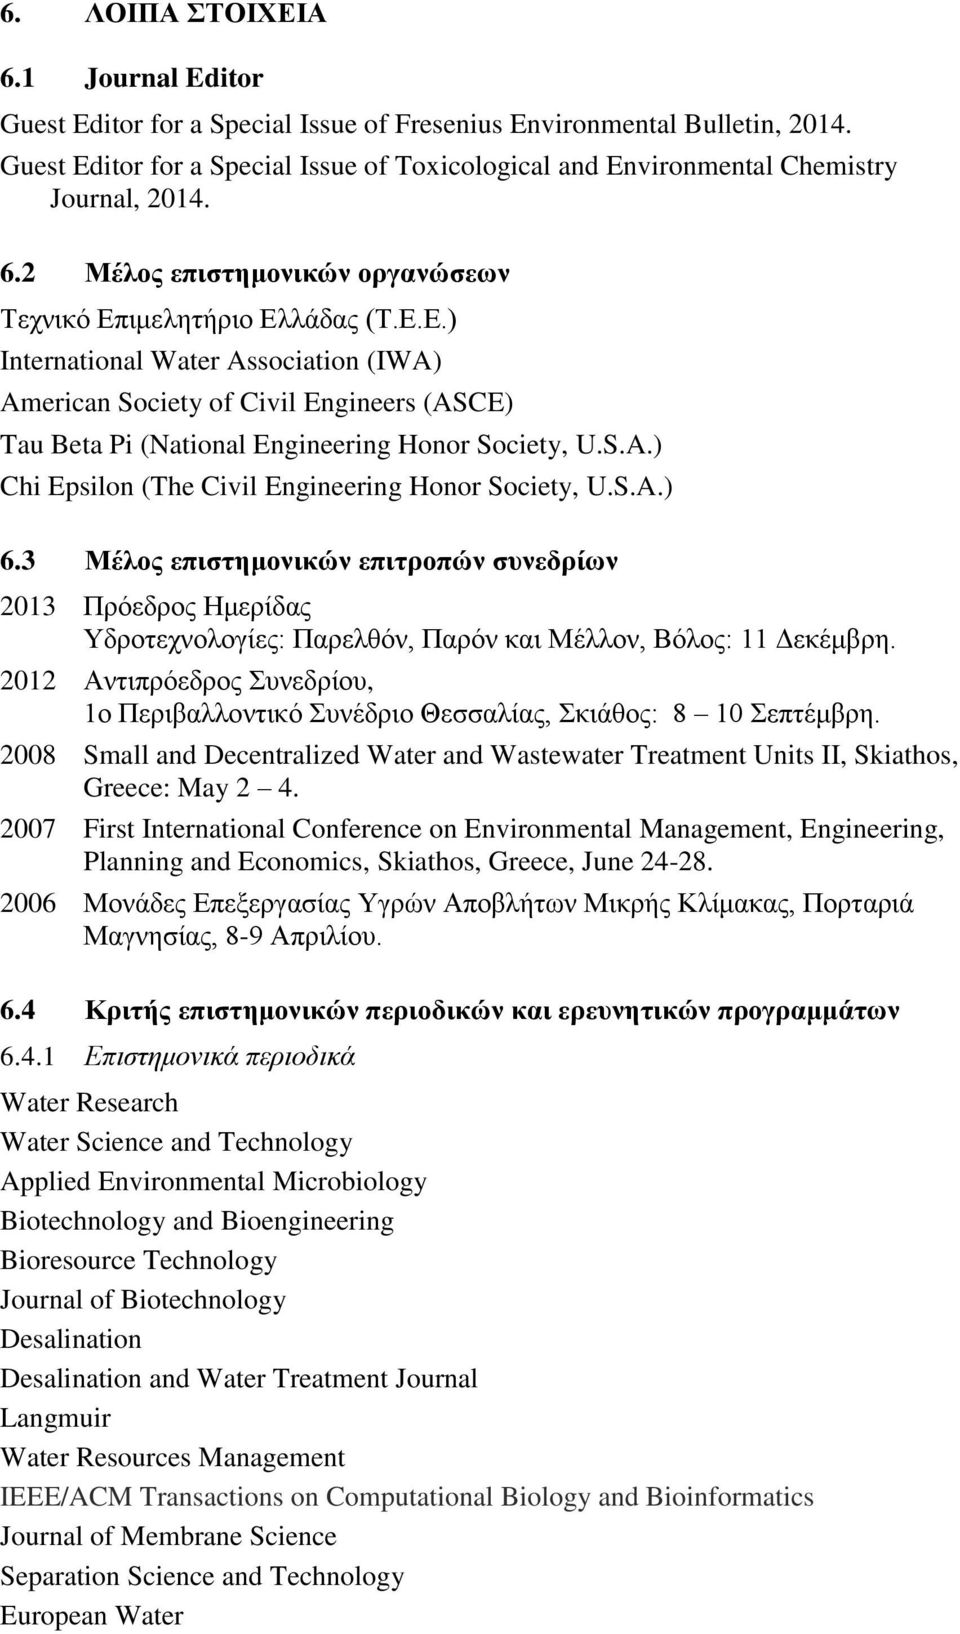 ιμελητήριο Ελλάδας (Τ.Ε.Ε.) International Water Association (IWA) American Society of Civil Engineers (ASCE) Tau Beta Pi (National Engineering Honor Society, U.S.A.) Chi Epsilon (The Civil Engineering Honor Society, U.